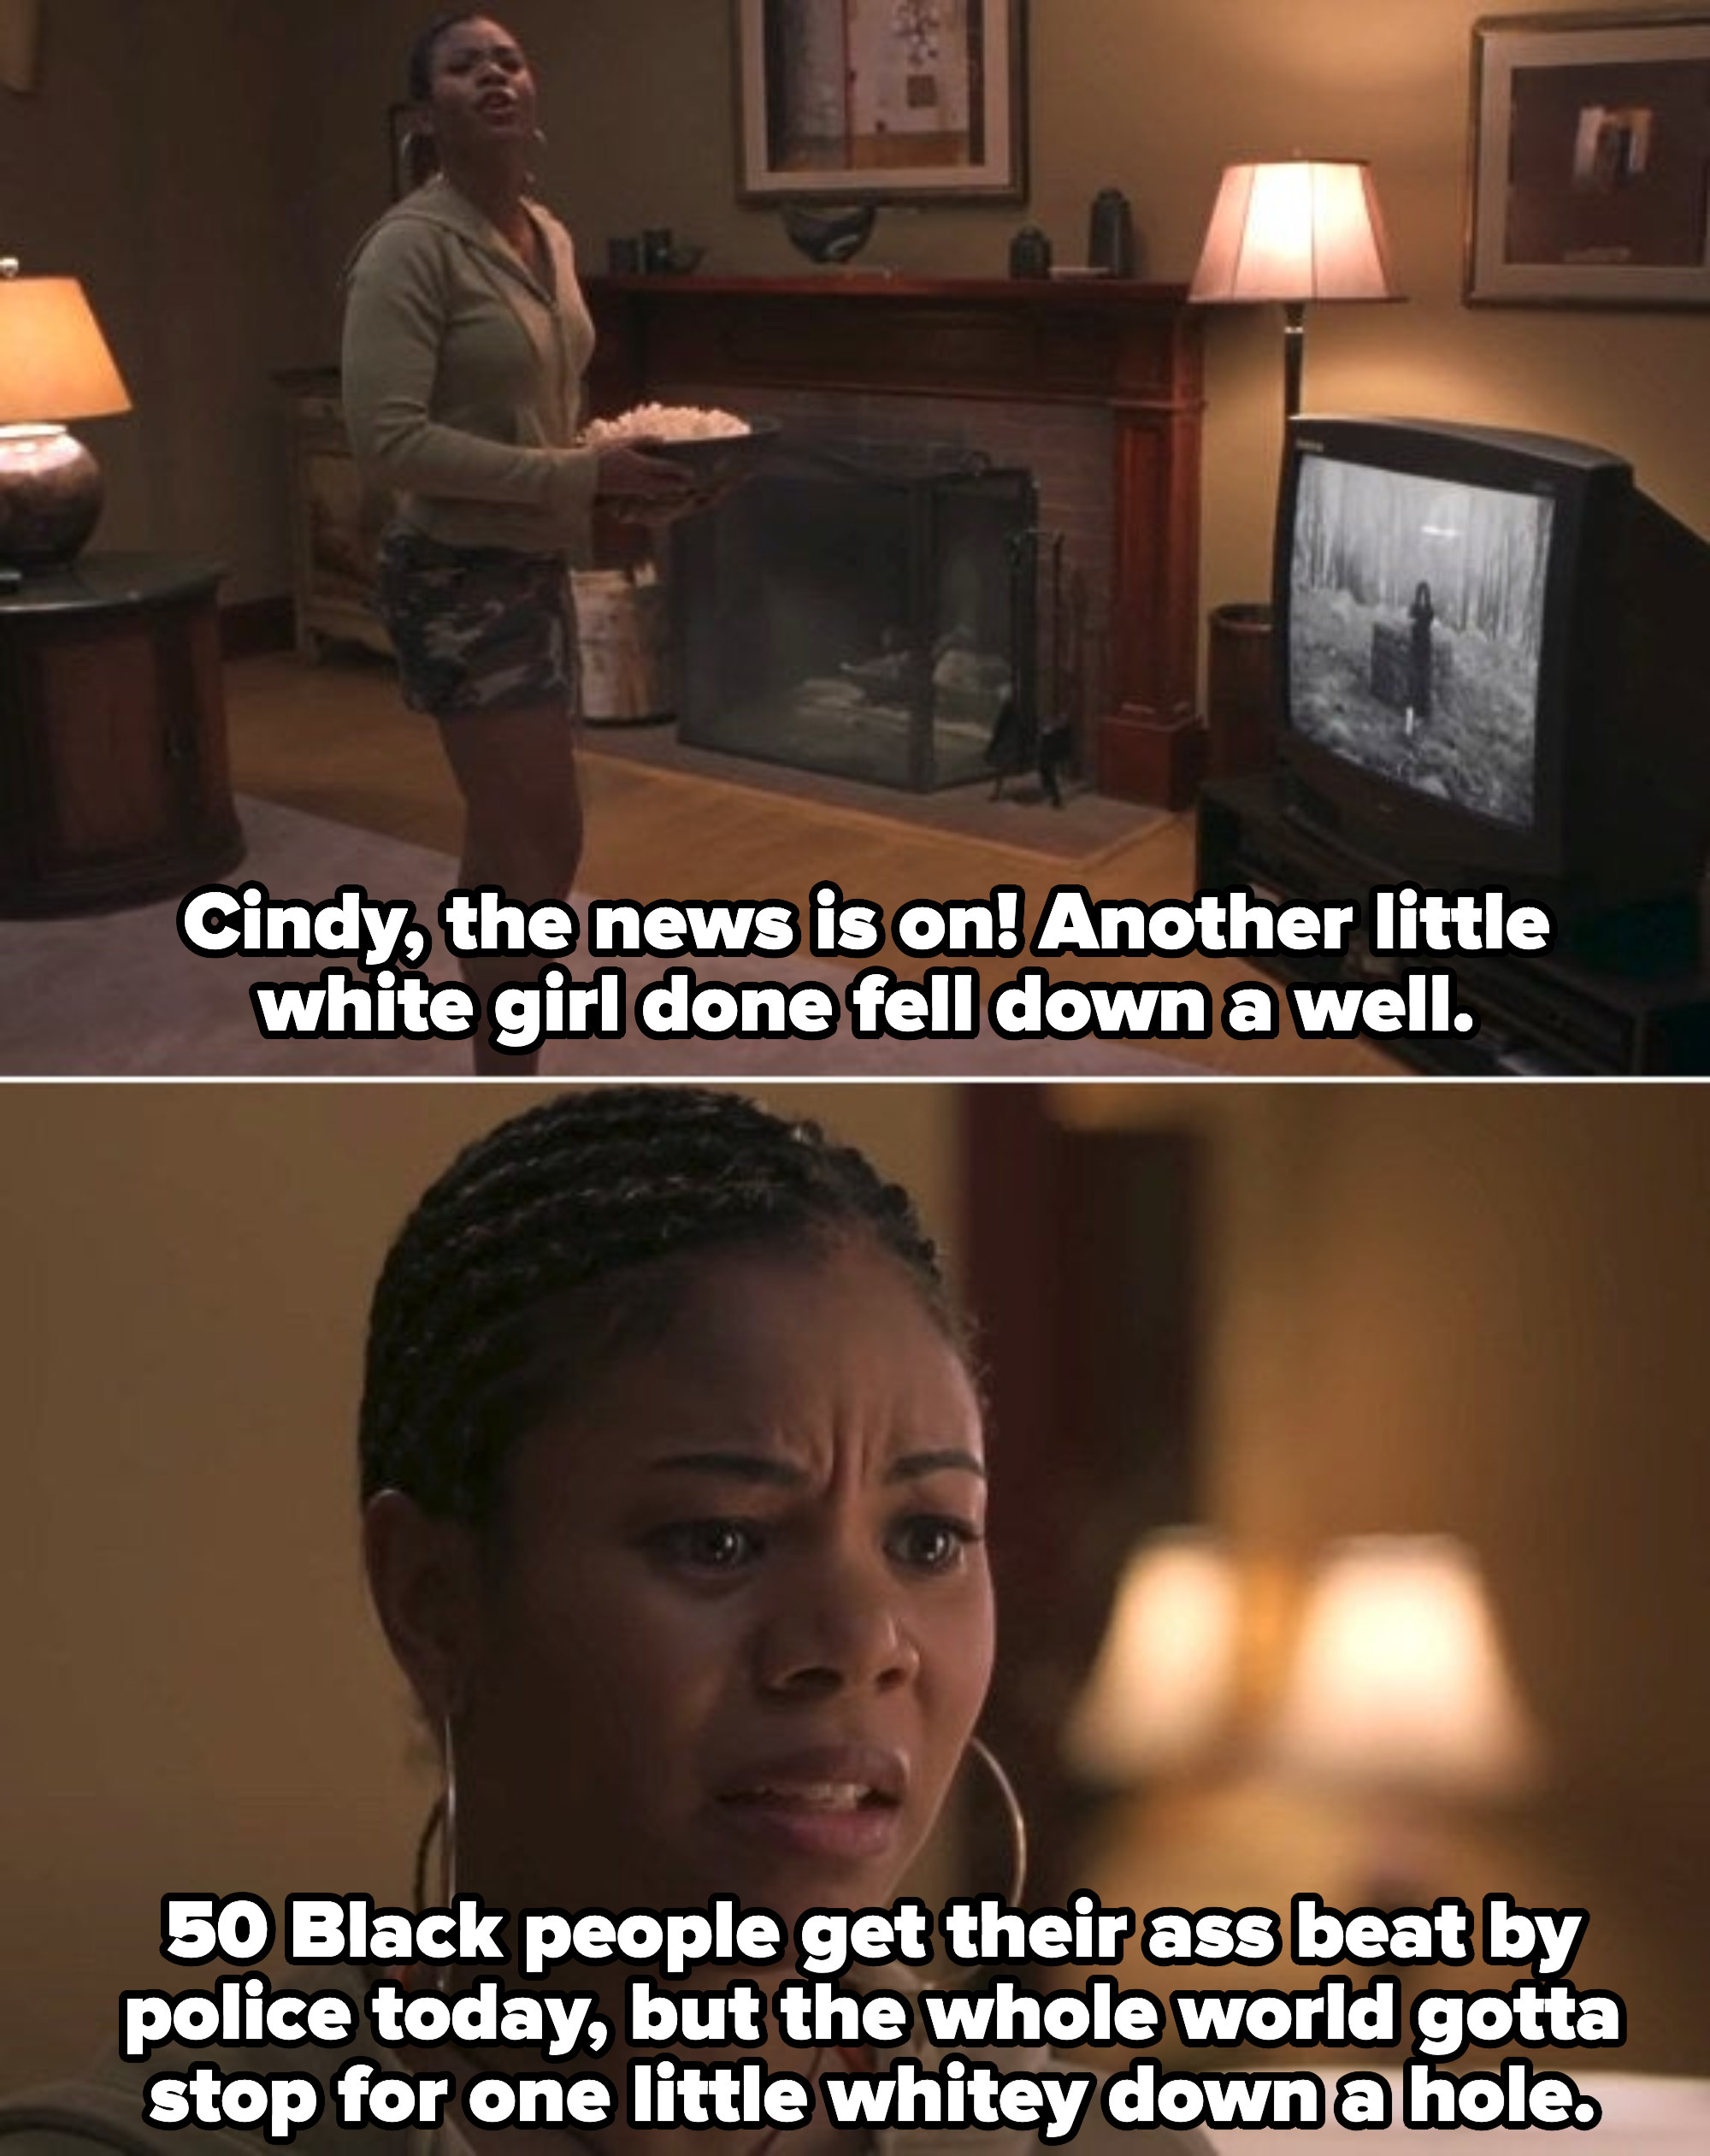 Brenda watching the news and telling Cindy a white girl fell down the well